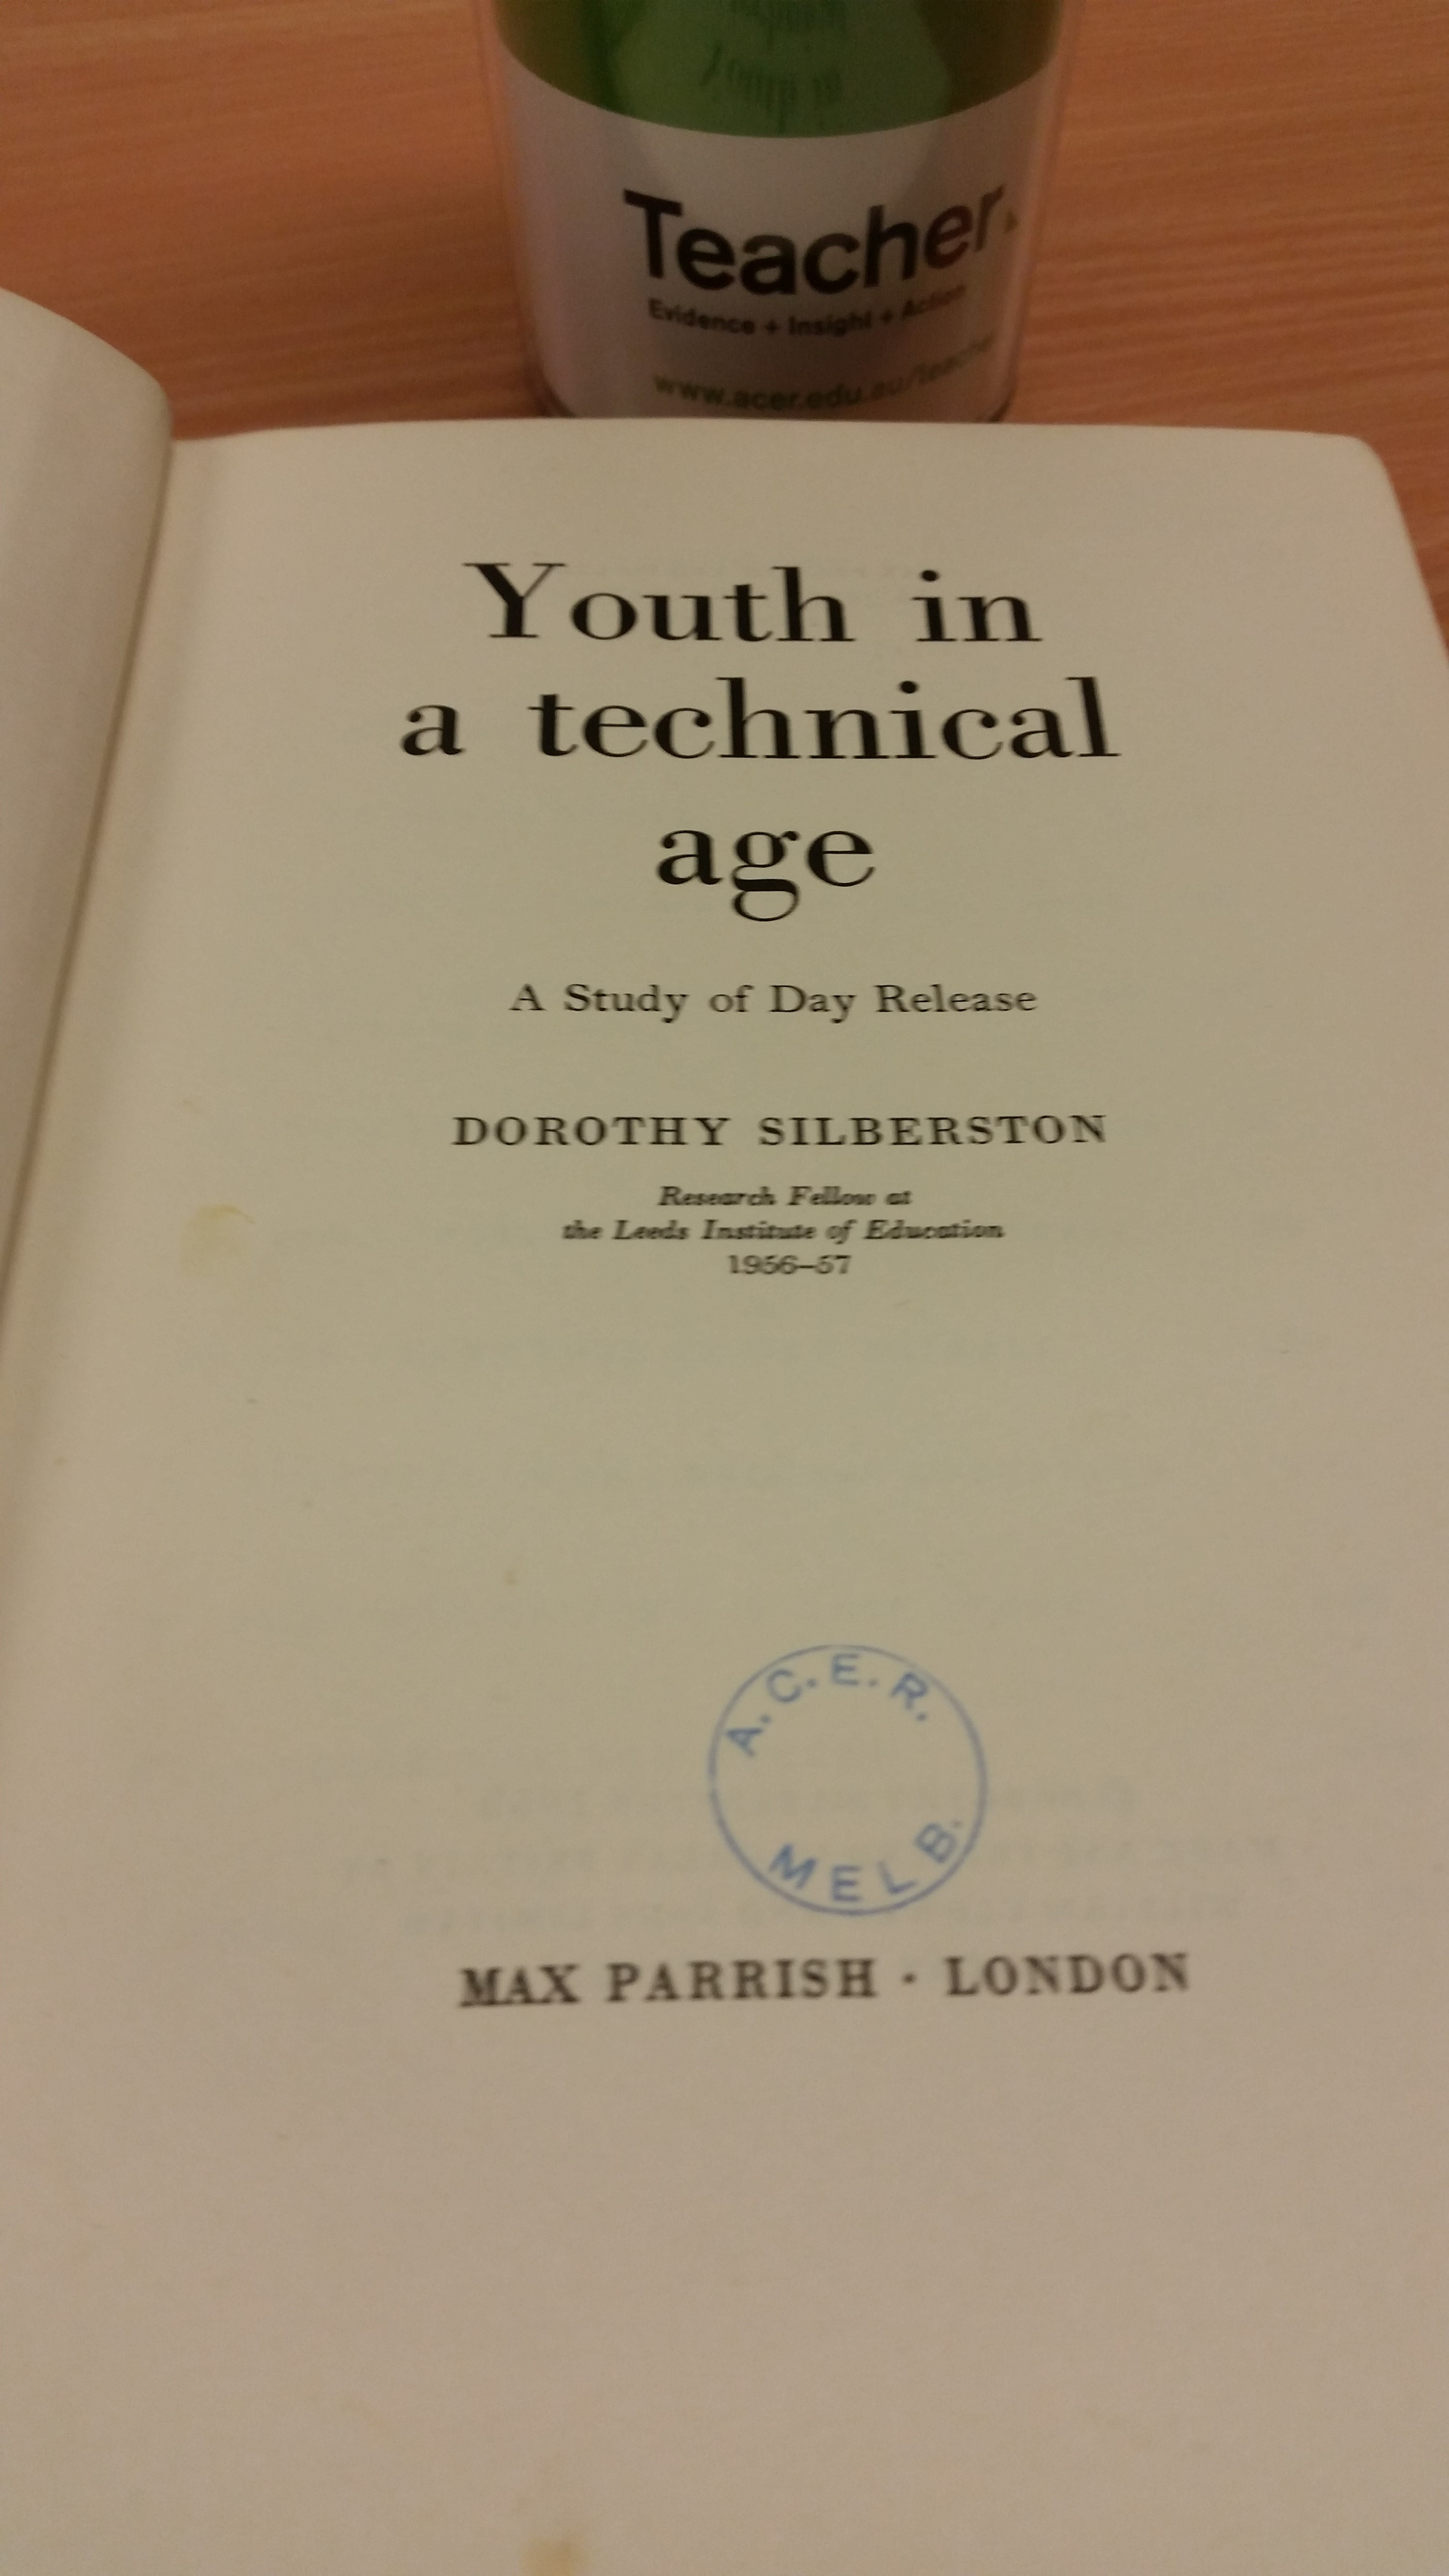 Education resource from 1959